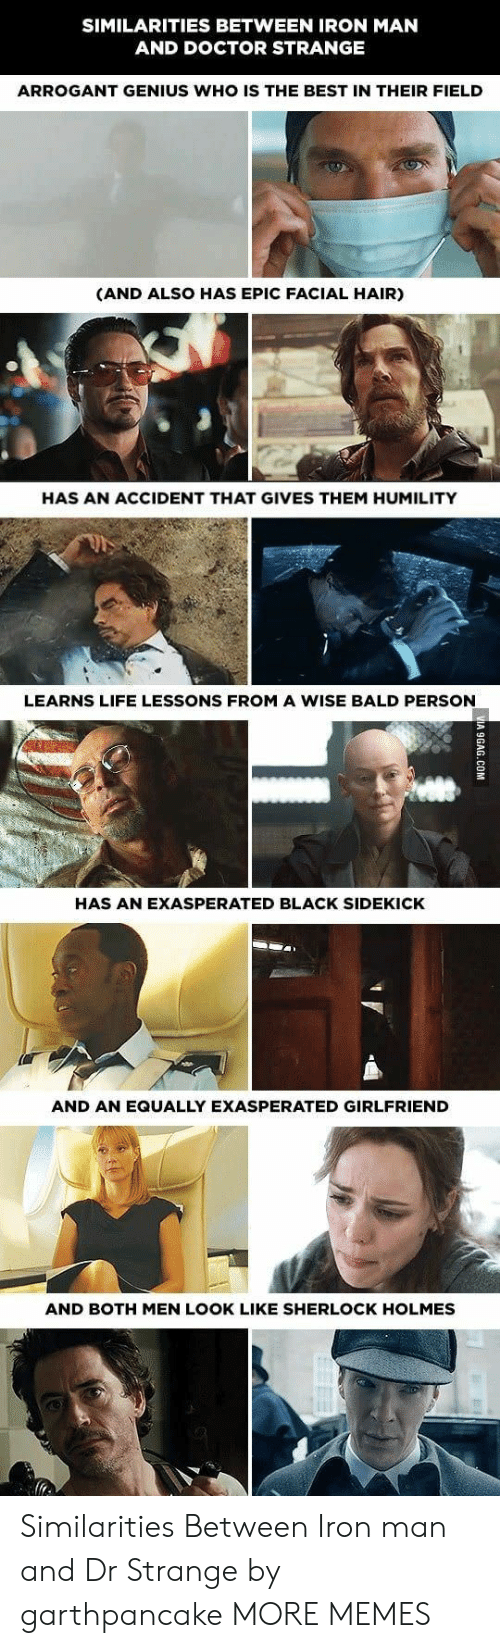 dr strange: SIMILARITIES BETWEEN IRON MAN  AND DOCTOR STRANGE  ARROGANT GENIUS WHO IS THE BEST IN THEIR FIELD  (AND ALSO HAS EPIC FACIAL HAIR)  HAS AN ACCIDENT THAT GIVES THEM HUMILITY  LEARNS LIFE LESSONS FROM A WISE BALD PERSON  HAS AN EXASPERATED BLACK SIDEKICK  AND AN EQUALLY EXASPERATED GIRLFRIEND  AND BOTH MEN LOOK LIKE SHERLOCK HOLMES Similarities Between Iron man and Dr Strange by garthpancake MORE MEMES